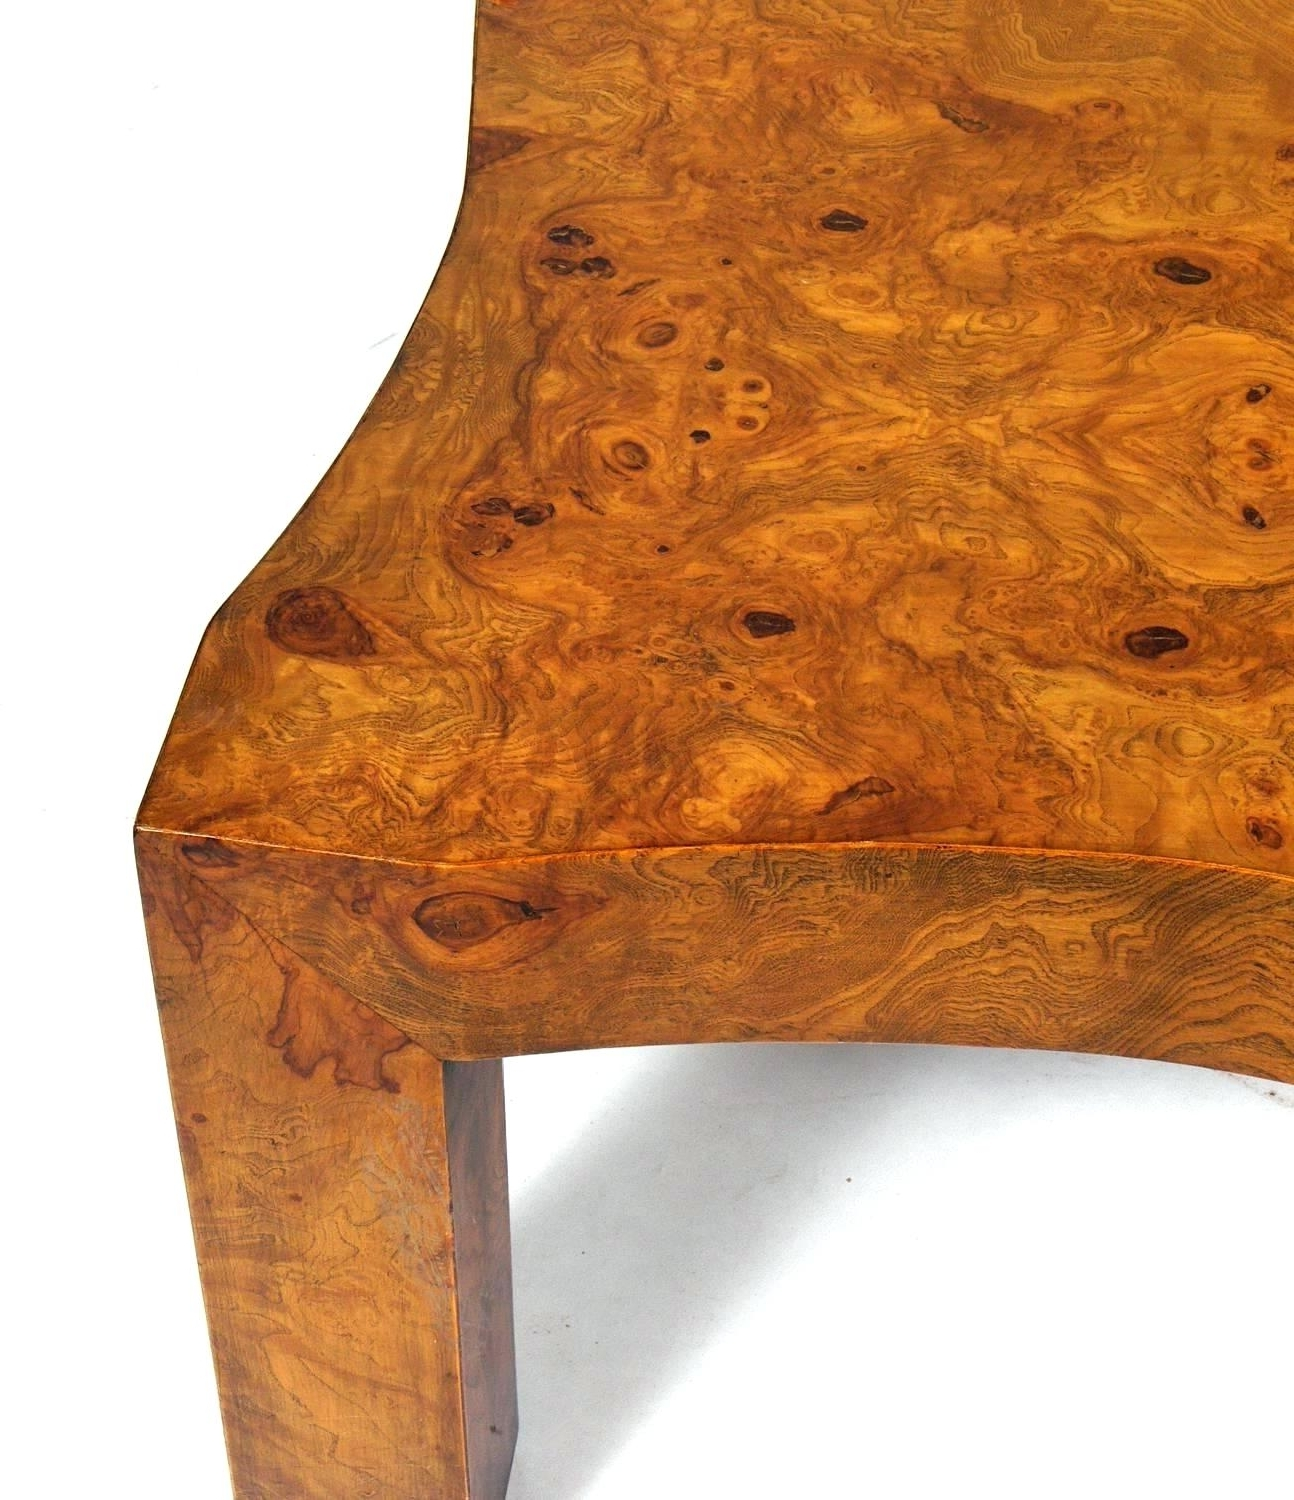 Burled Wood Coffee Table Wisteria Oslo Burl Wood Veneer Collection Intended For Widely Used Oslo Burl Wood Veneer Coffee Tables (View 20 of 20)